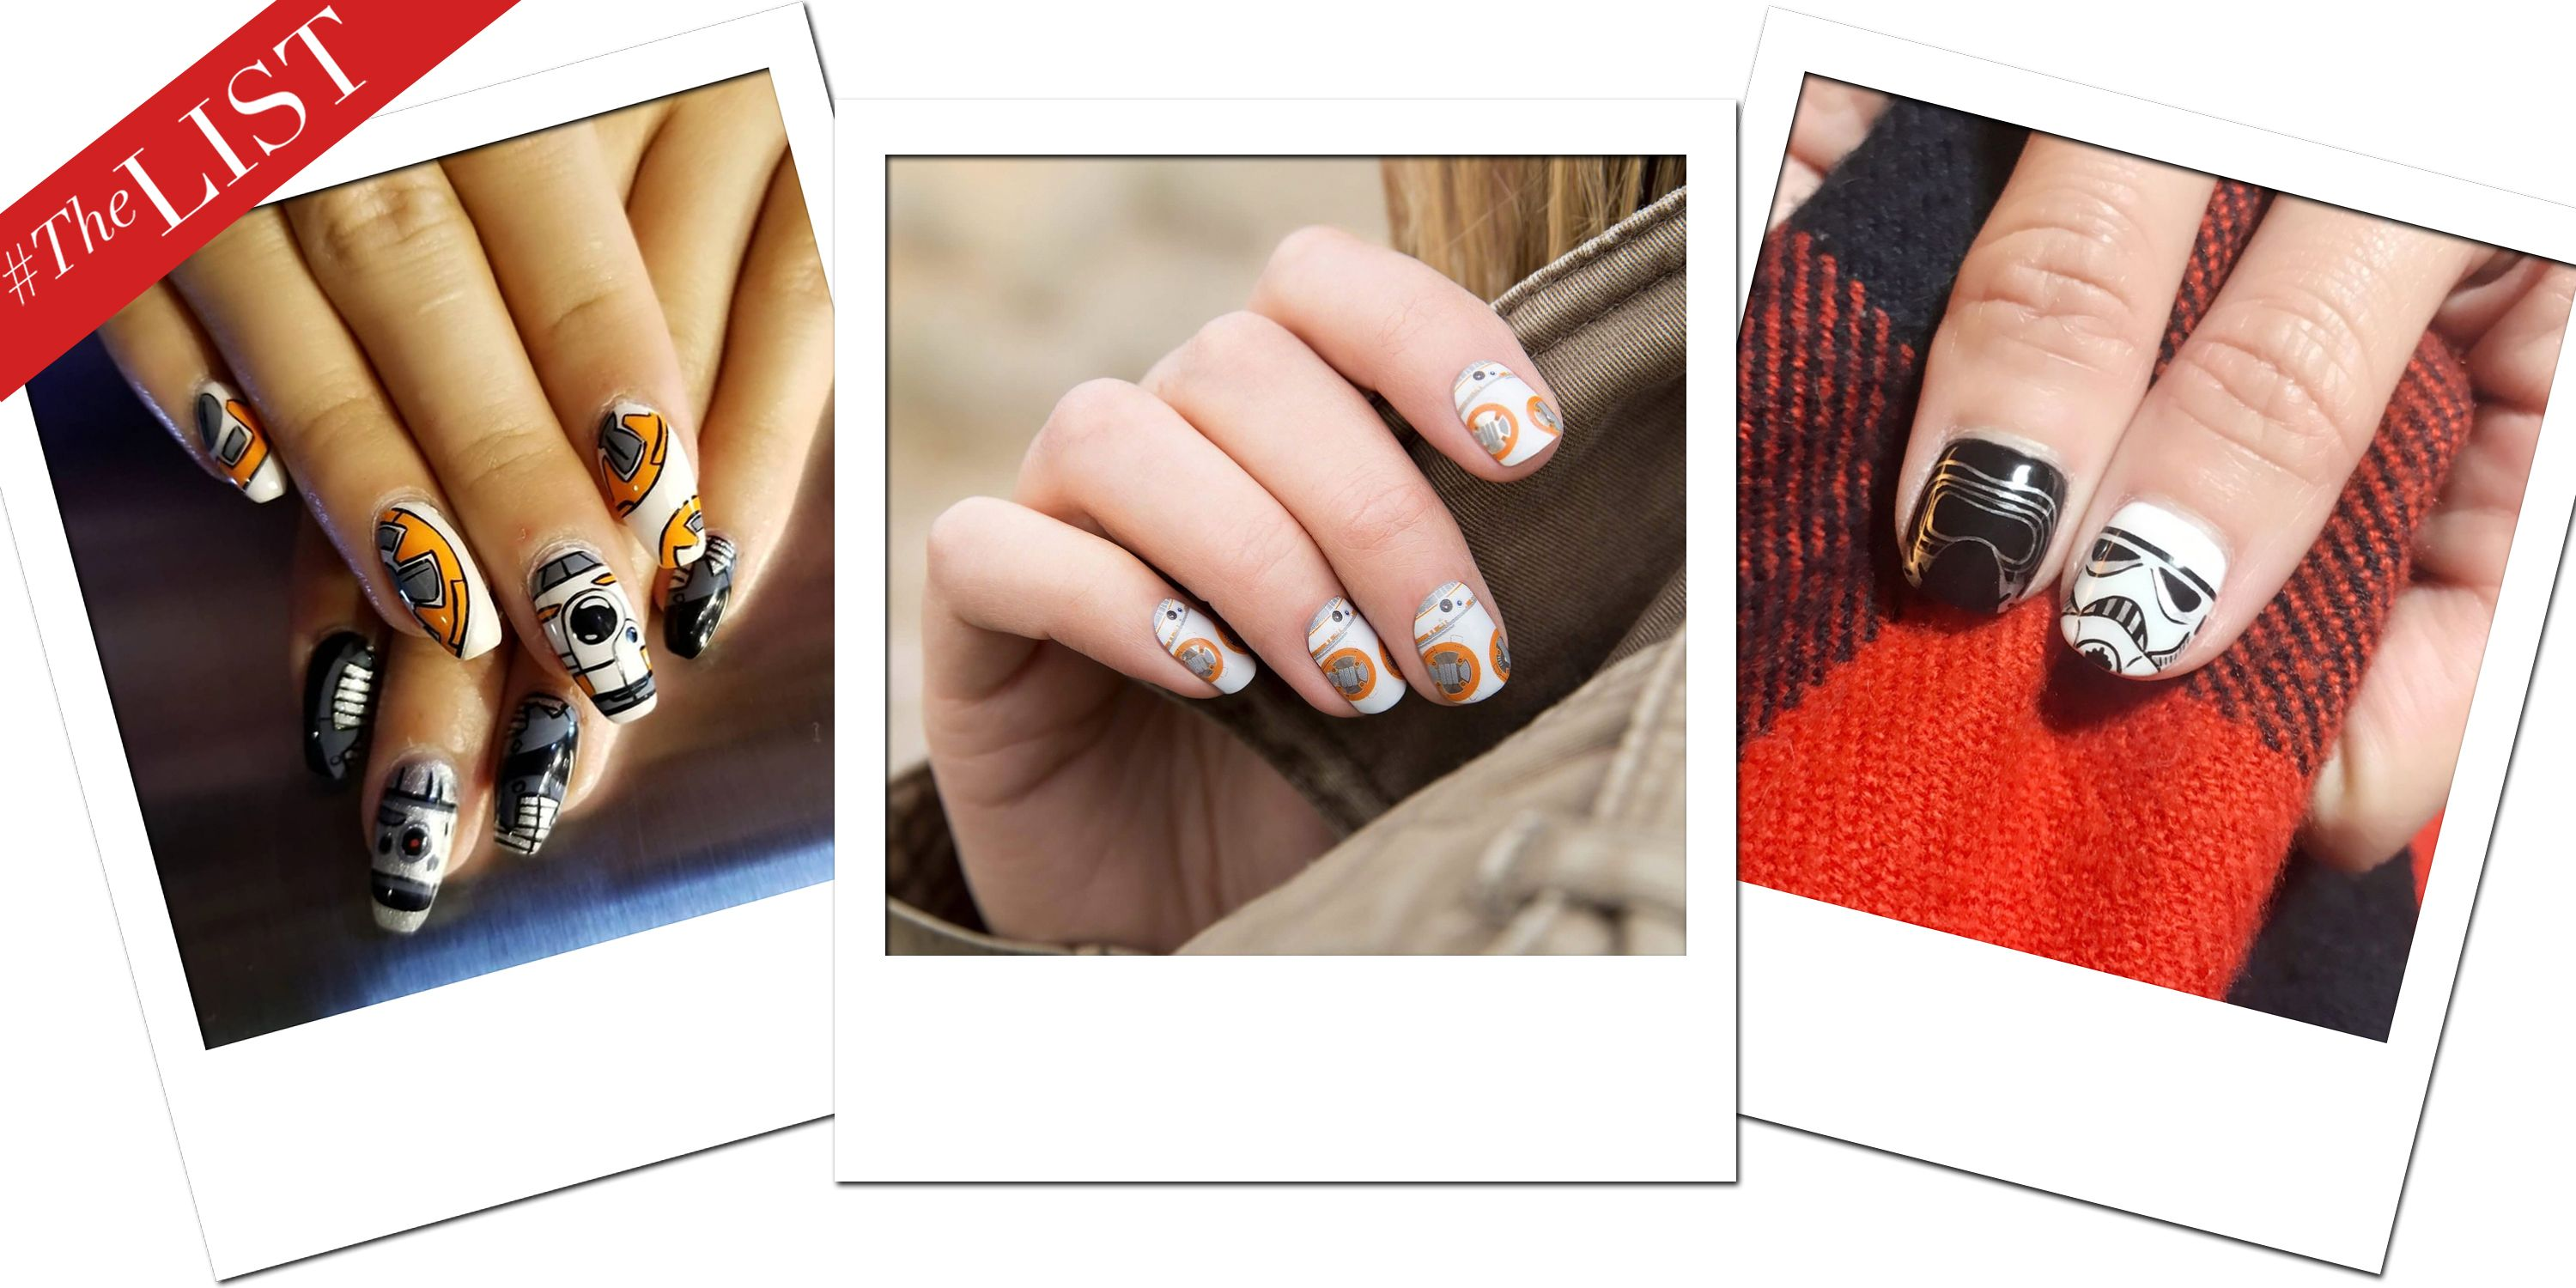 2018 nail polish trends and manicure ideas harpers bazaar nails prinsesfo Images